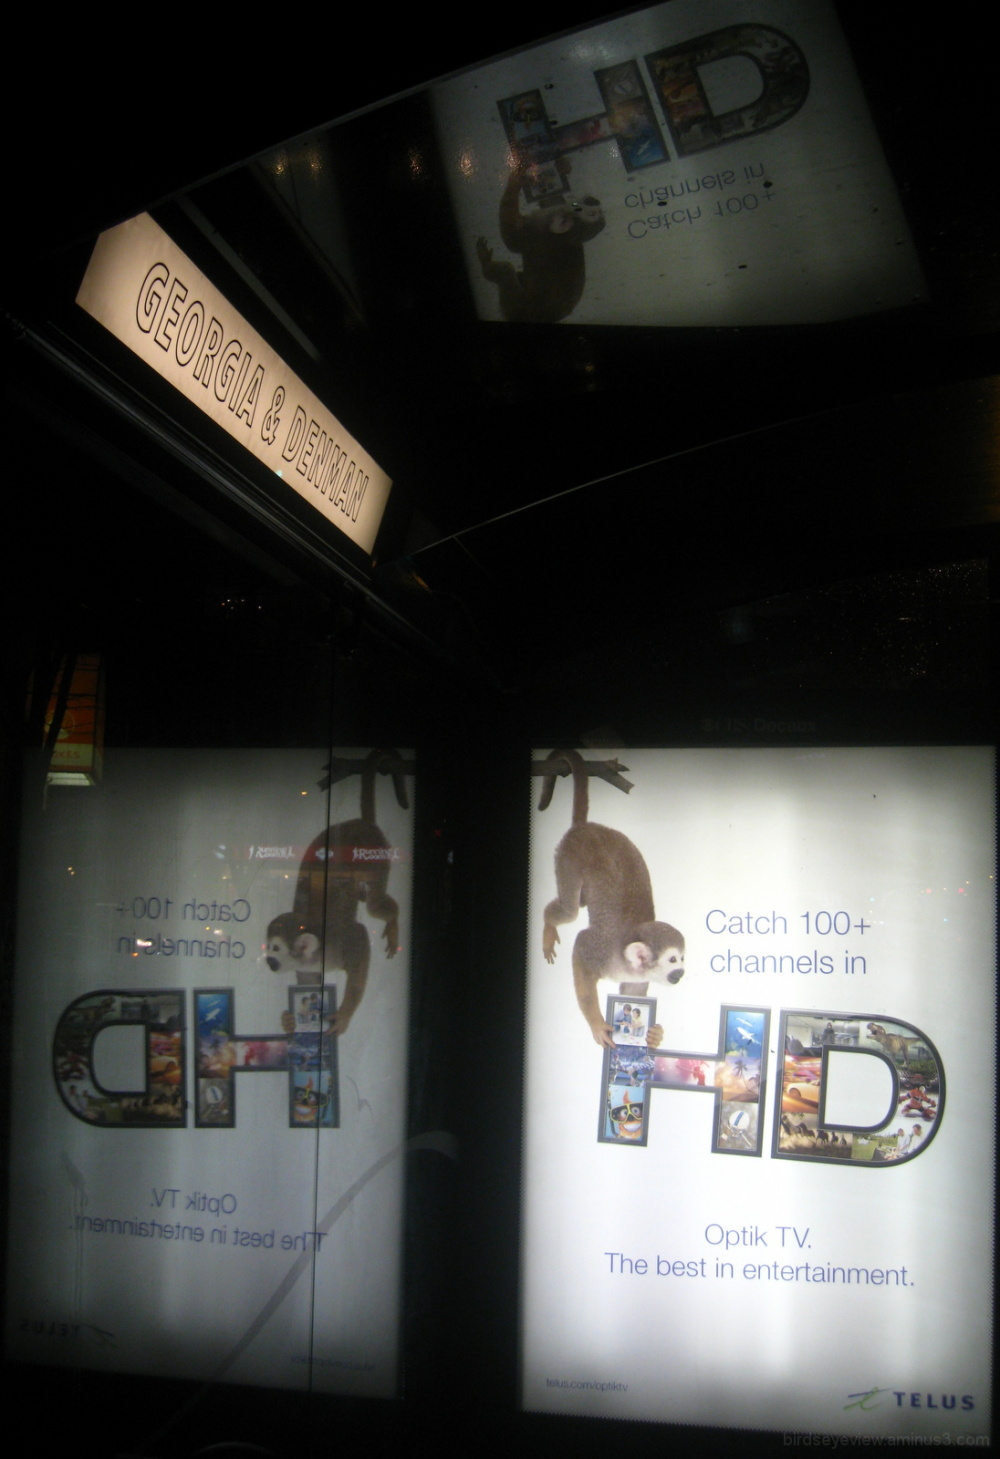 reflections on ads